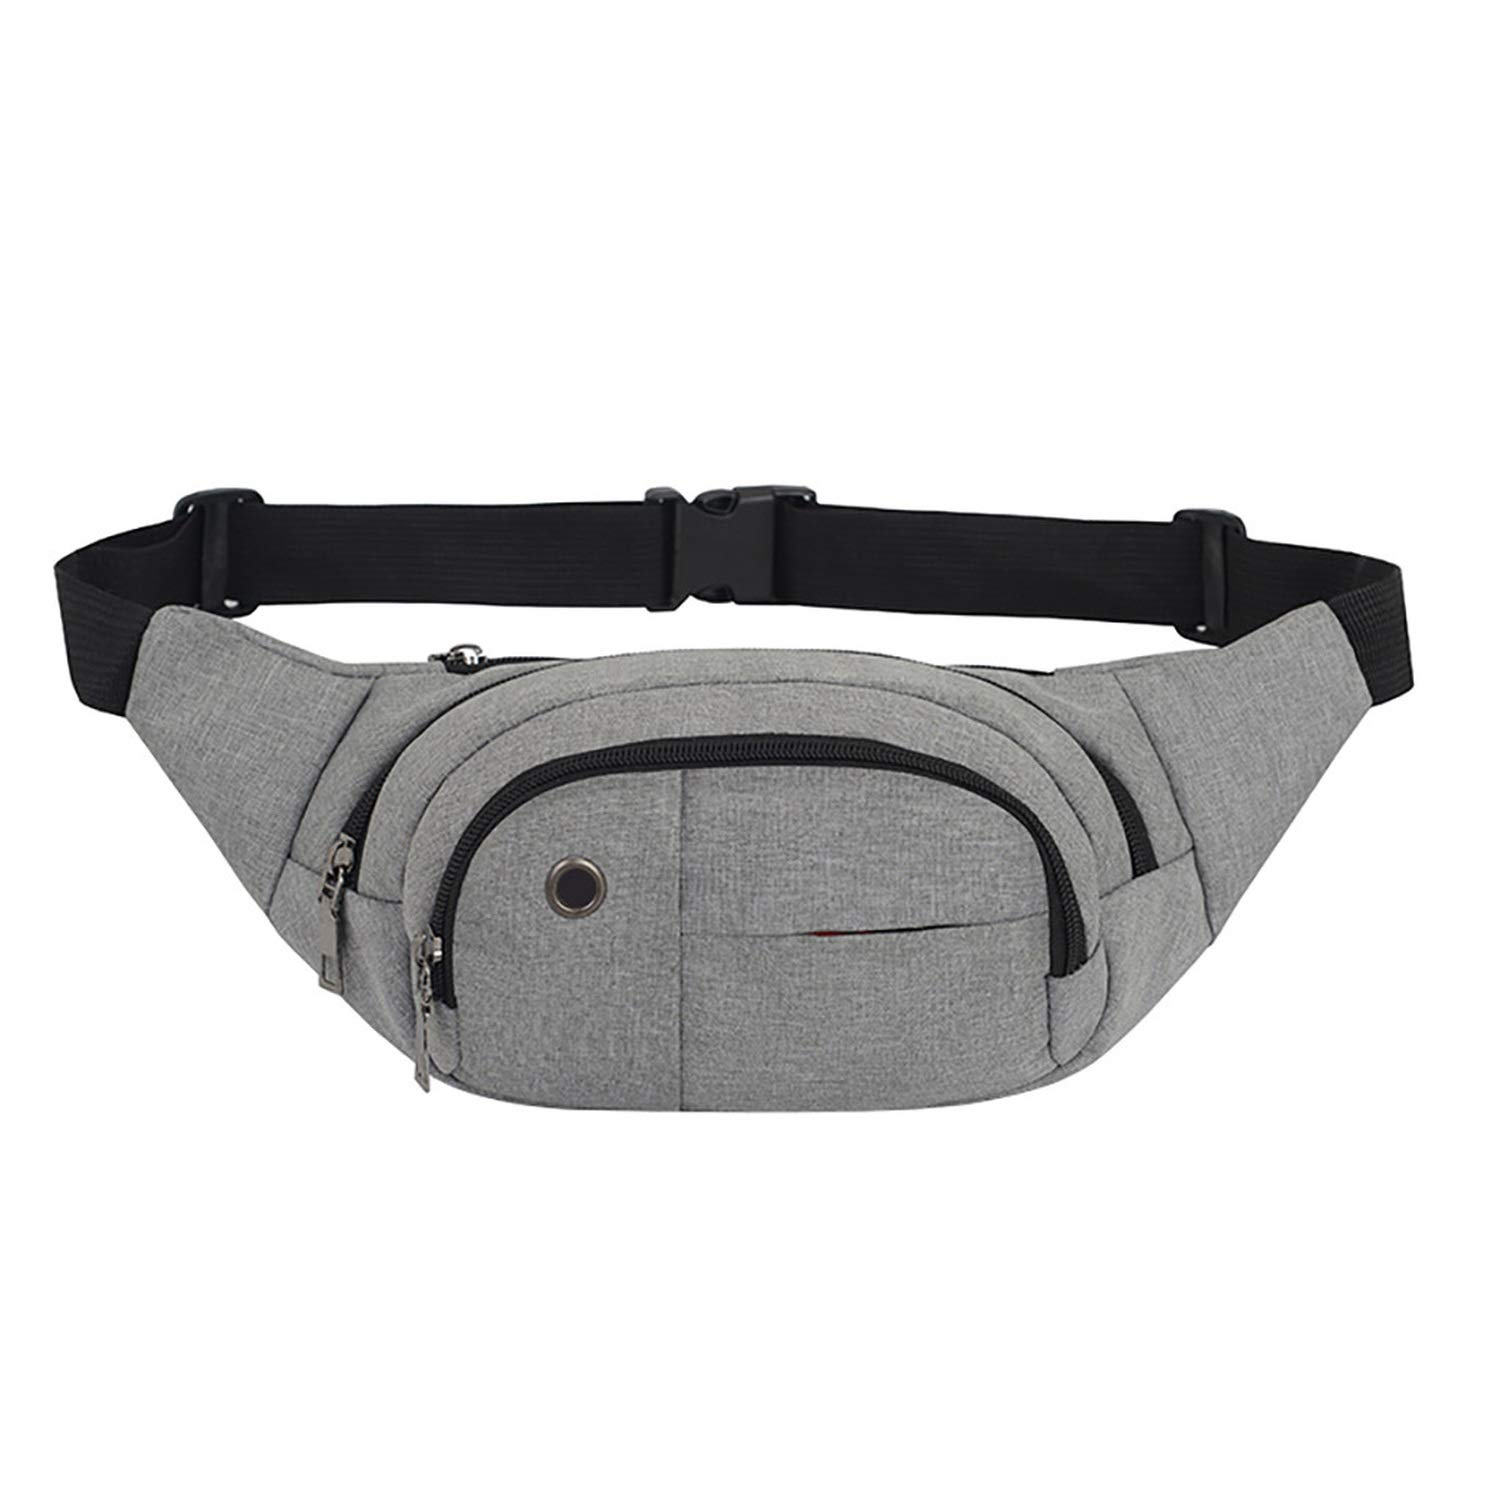 MenS And WomenS Couples Students Messenger Bags Sports And Leisure Multi Type Zipper Chest Bag,F